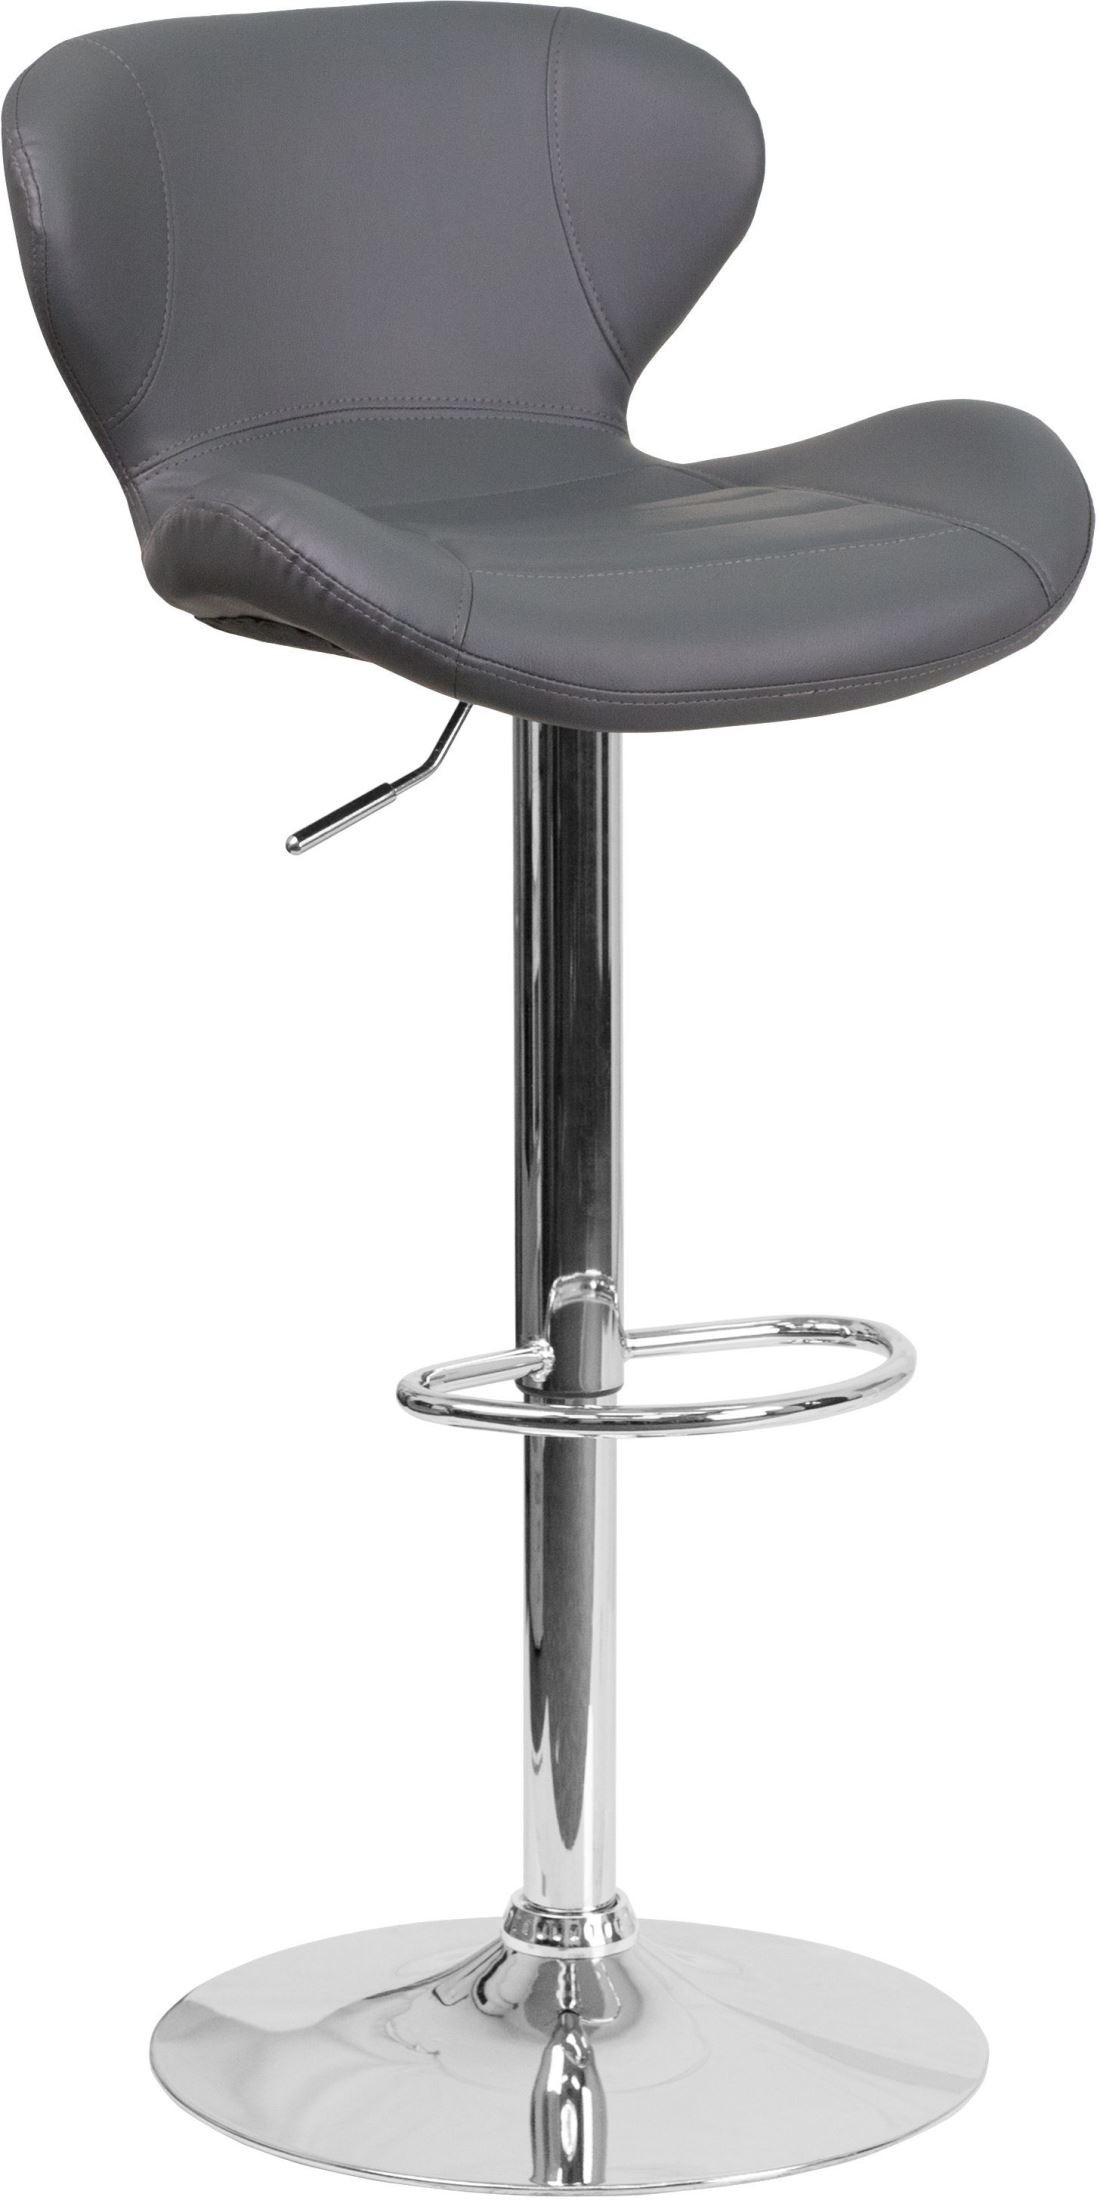 Contemporary Swivel Gray Vinyl Adjustable Height Barstool  : ch 321 gy gg from colemanfurniture.com size 1100 x 2200 jpeg 163kB